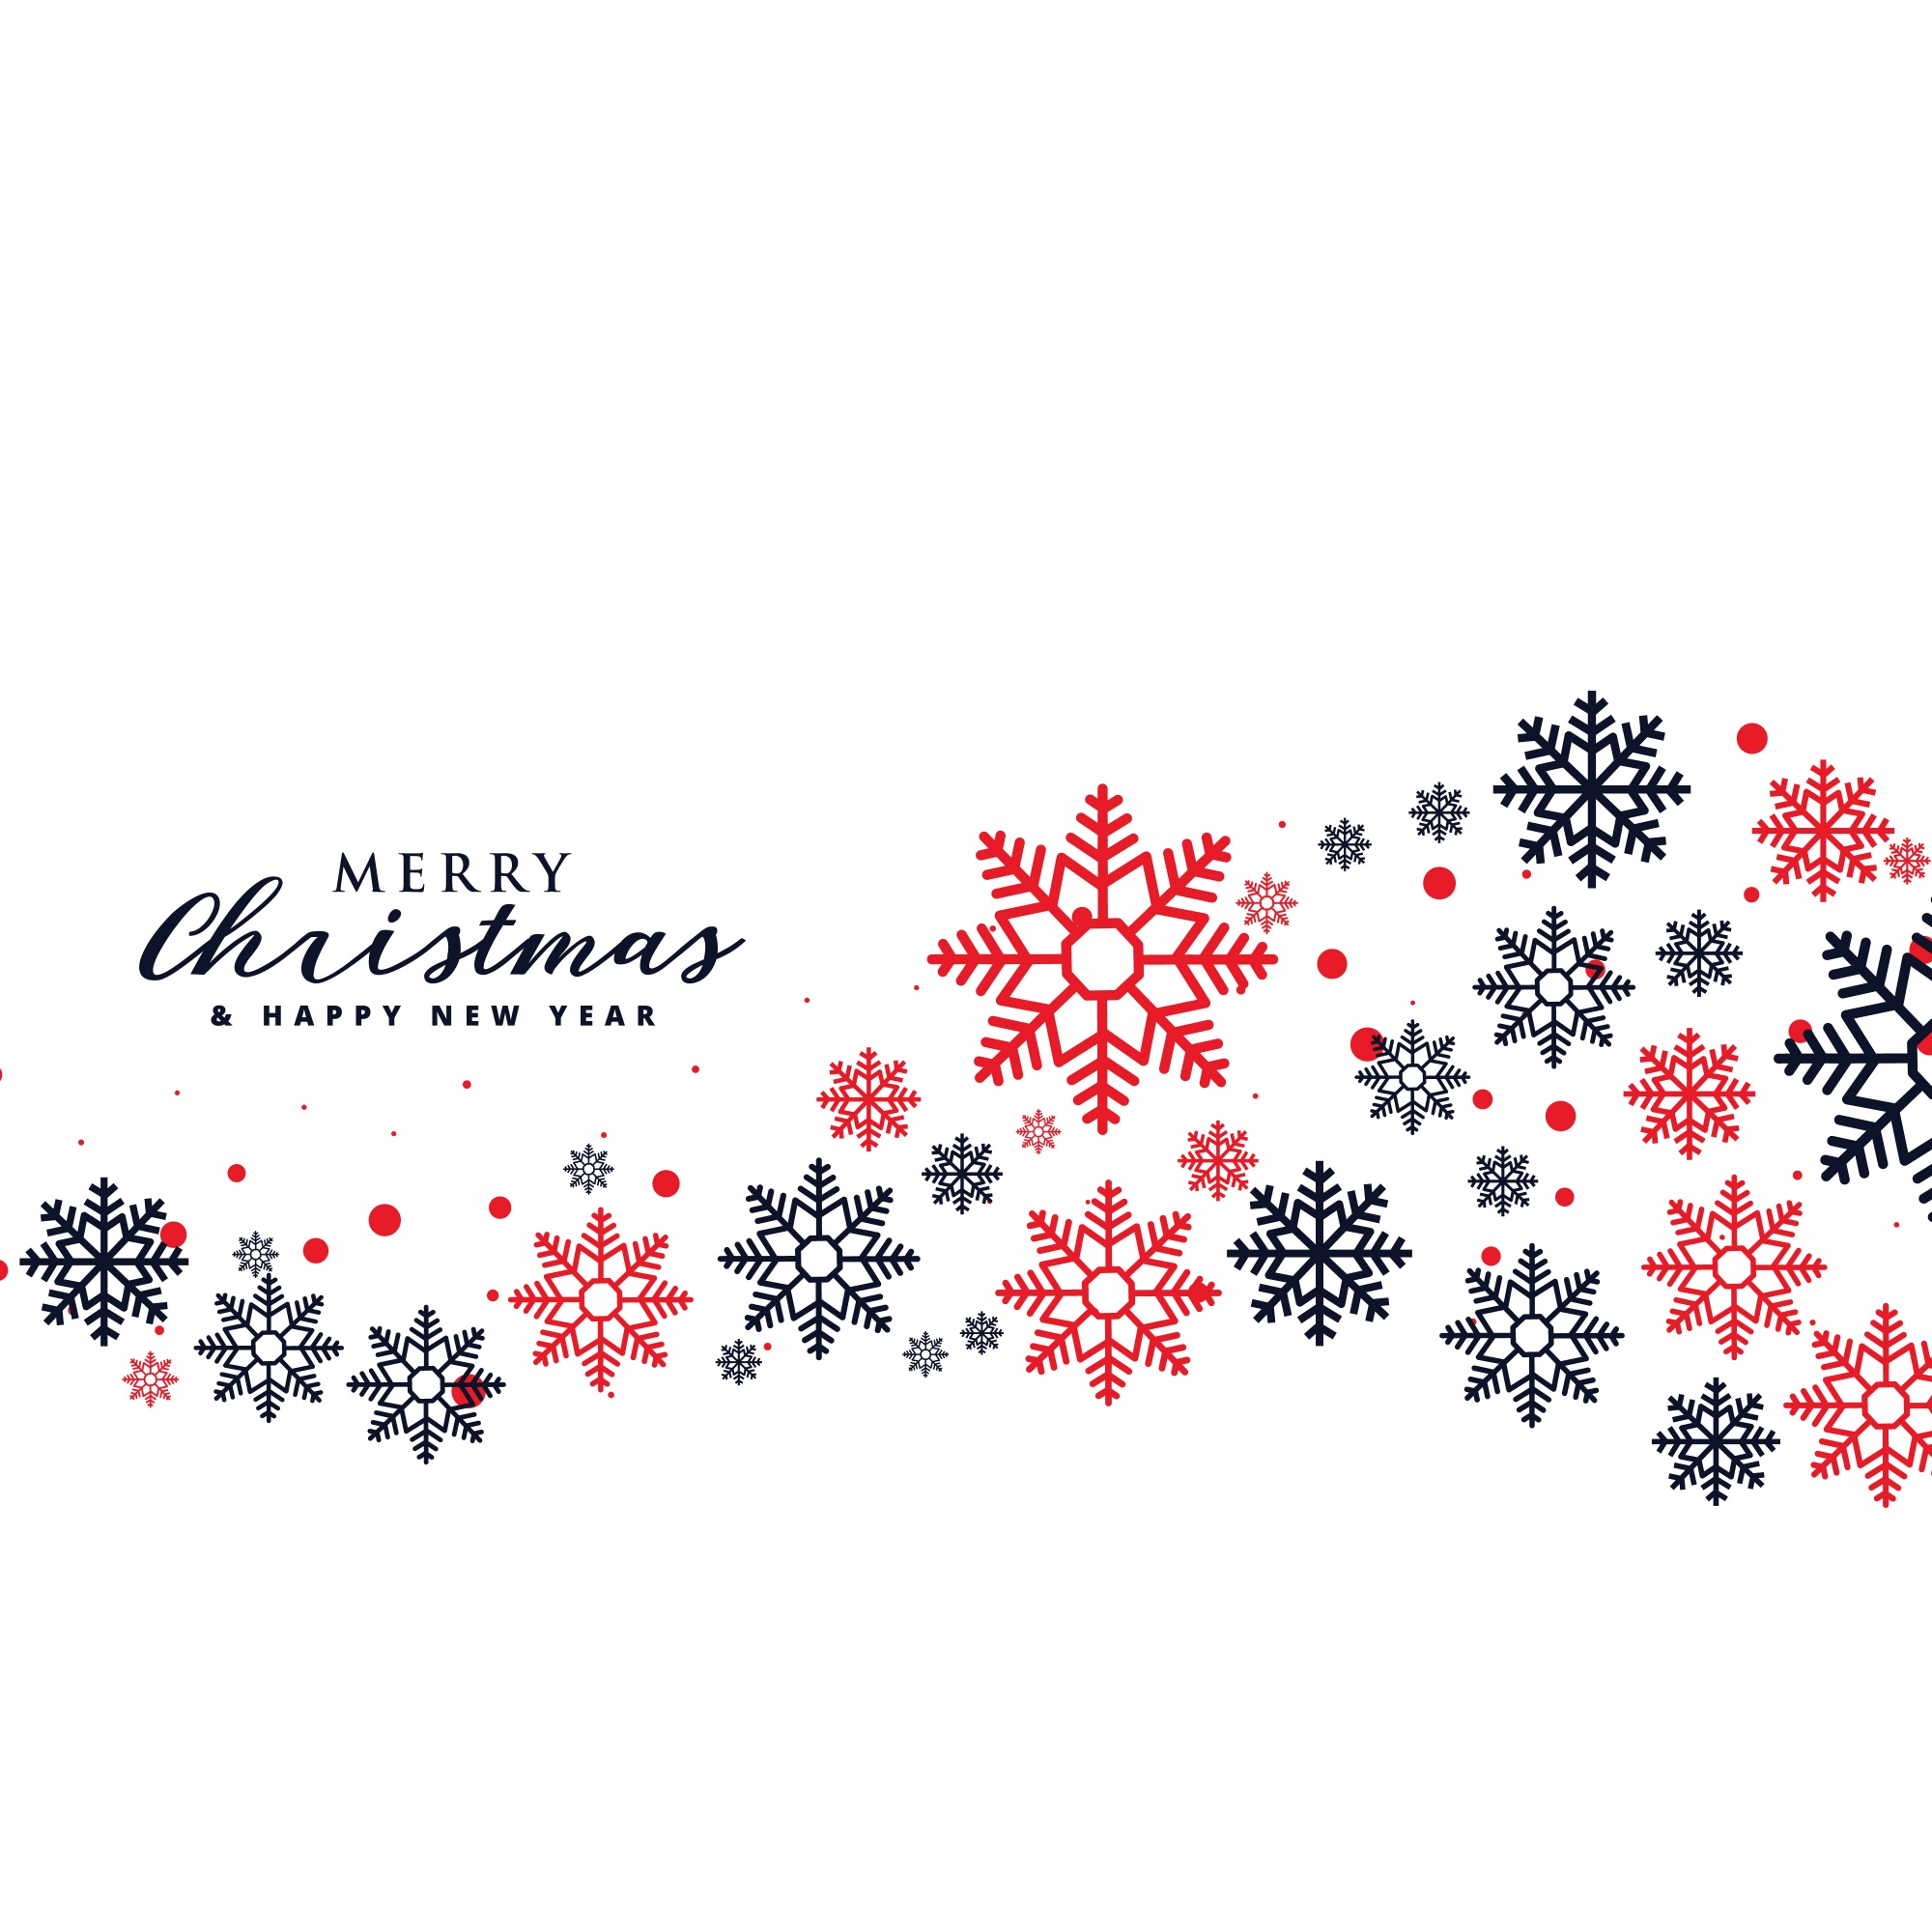 Stylish Snowflakes Background For Christmas Holiday Season